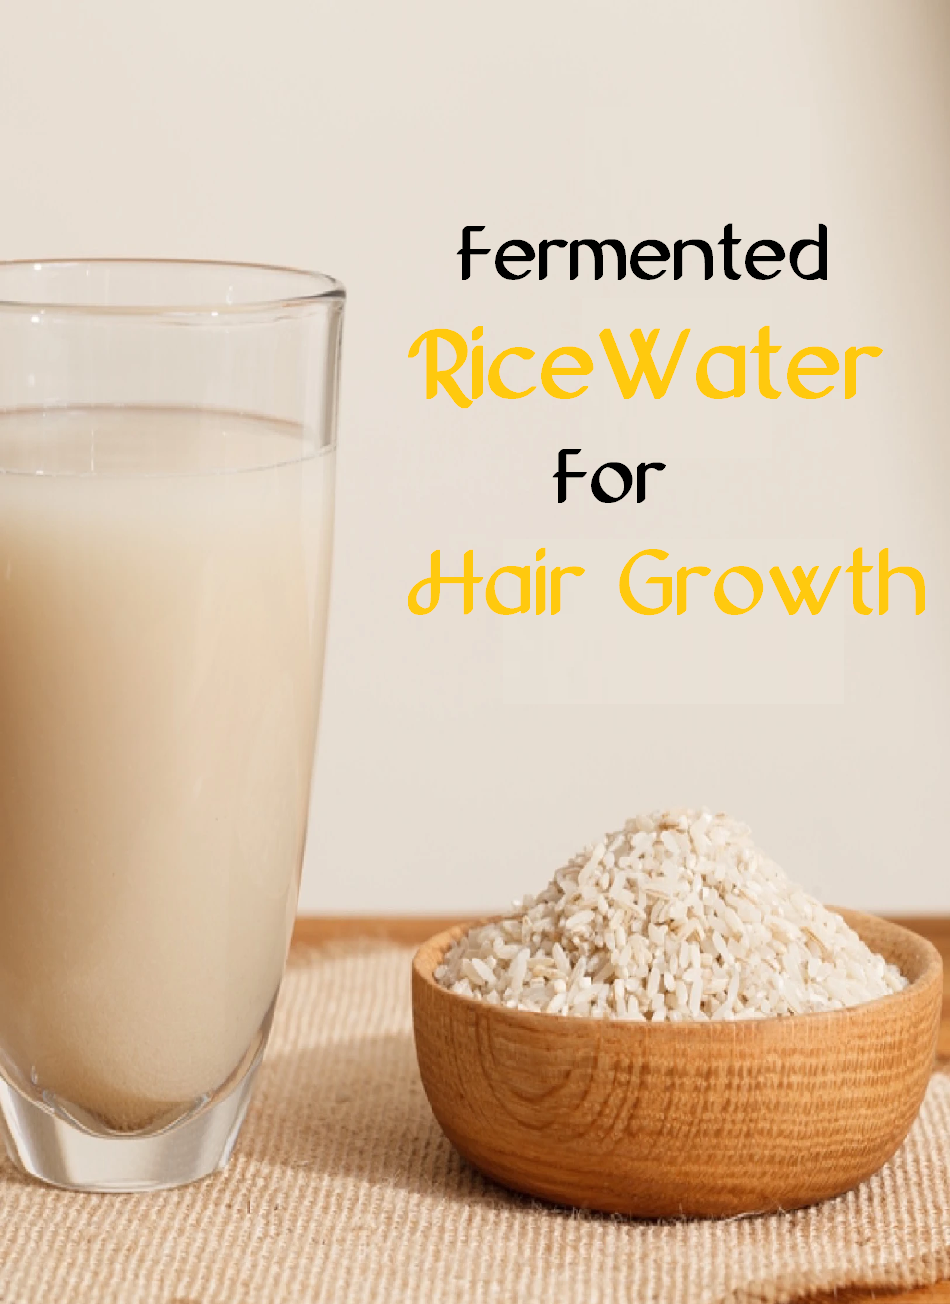 fermented rice water for hair growth